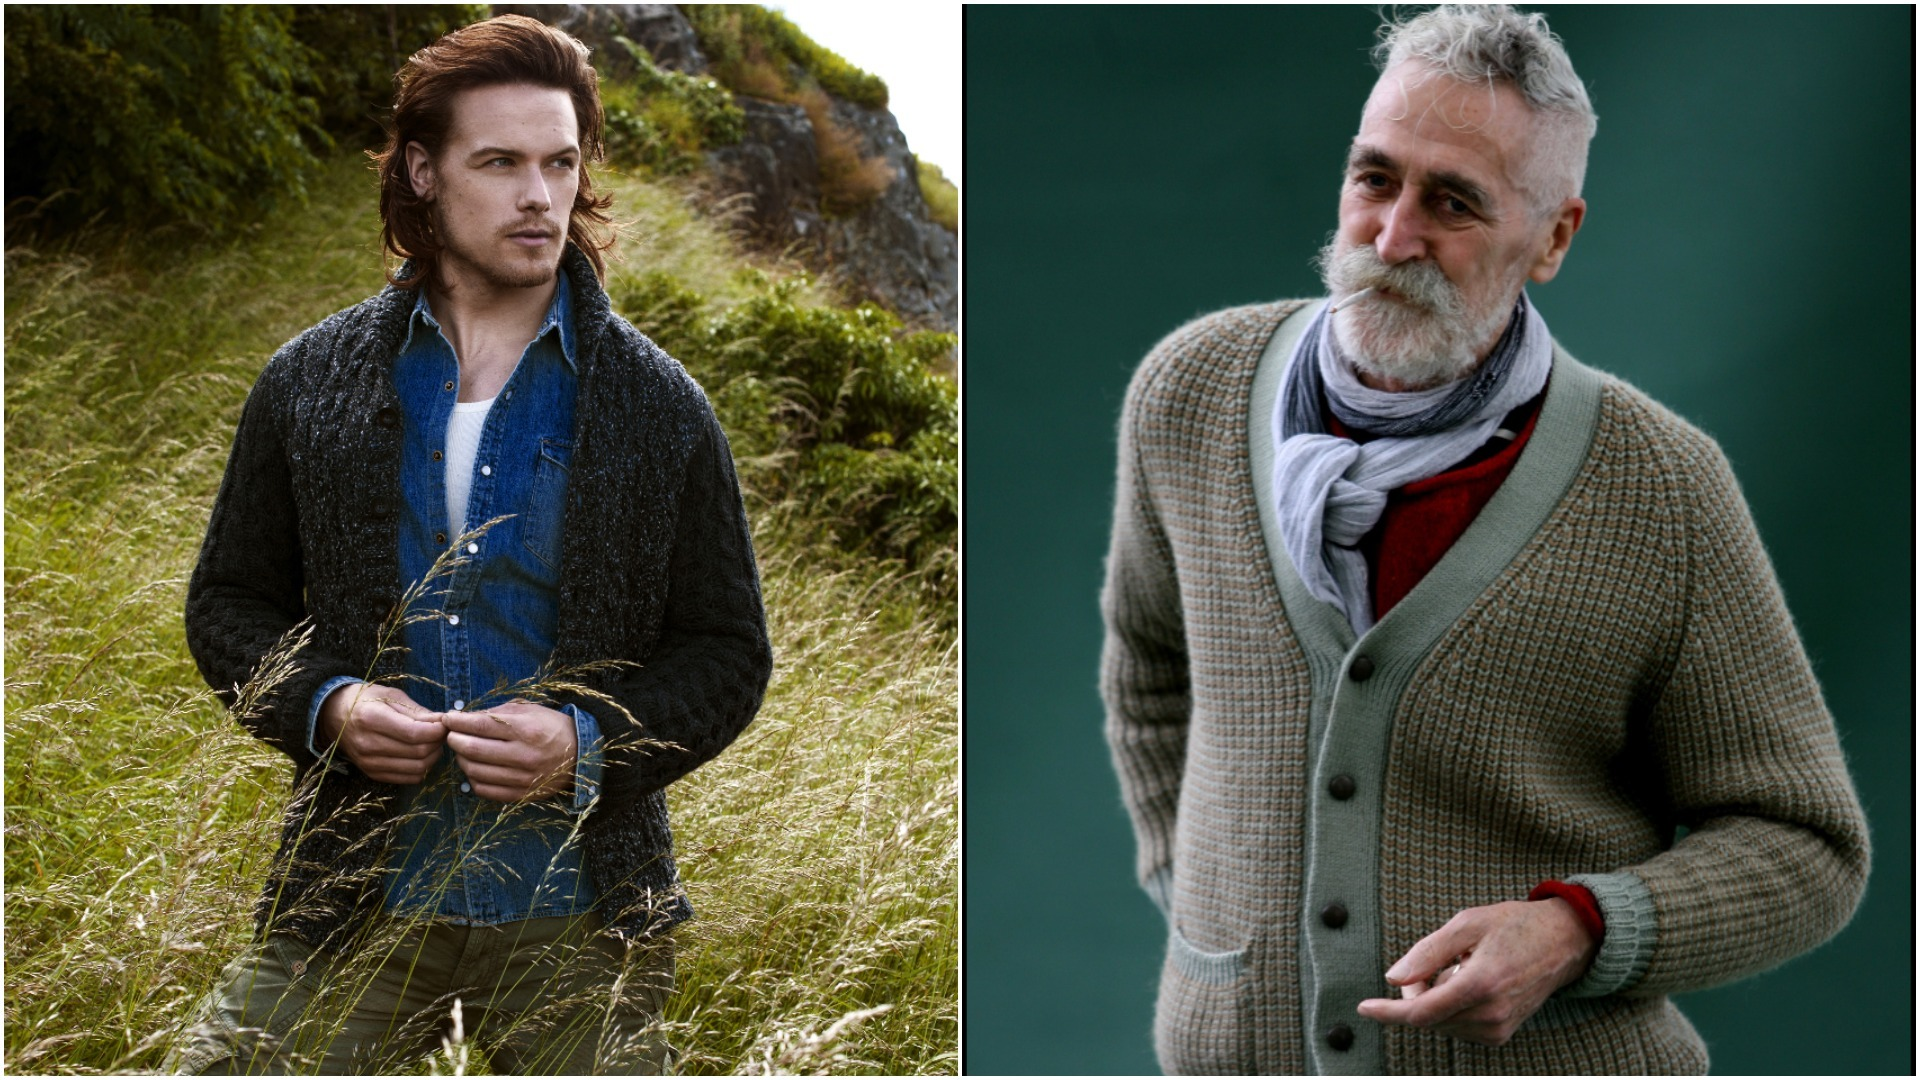 The stylish most man in scotland advise dress for autumn in 2019